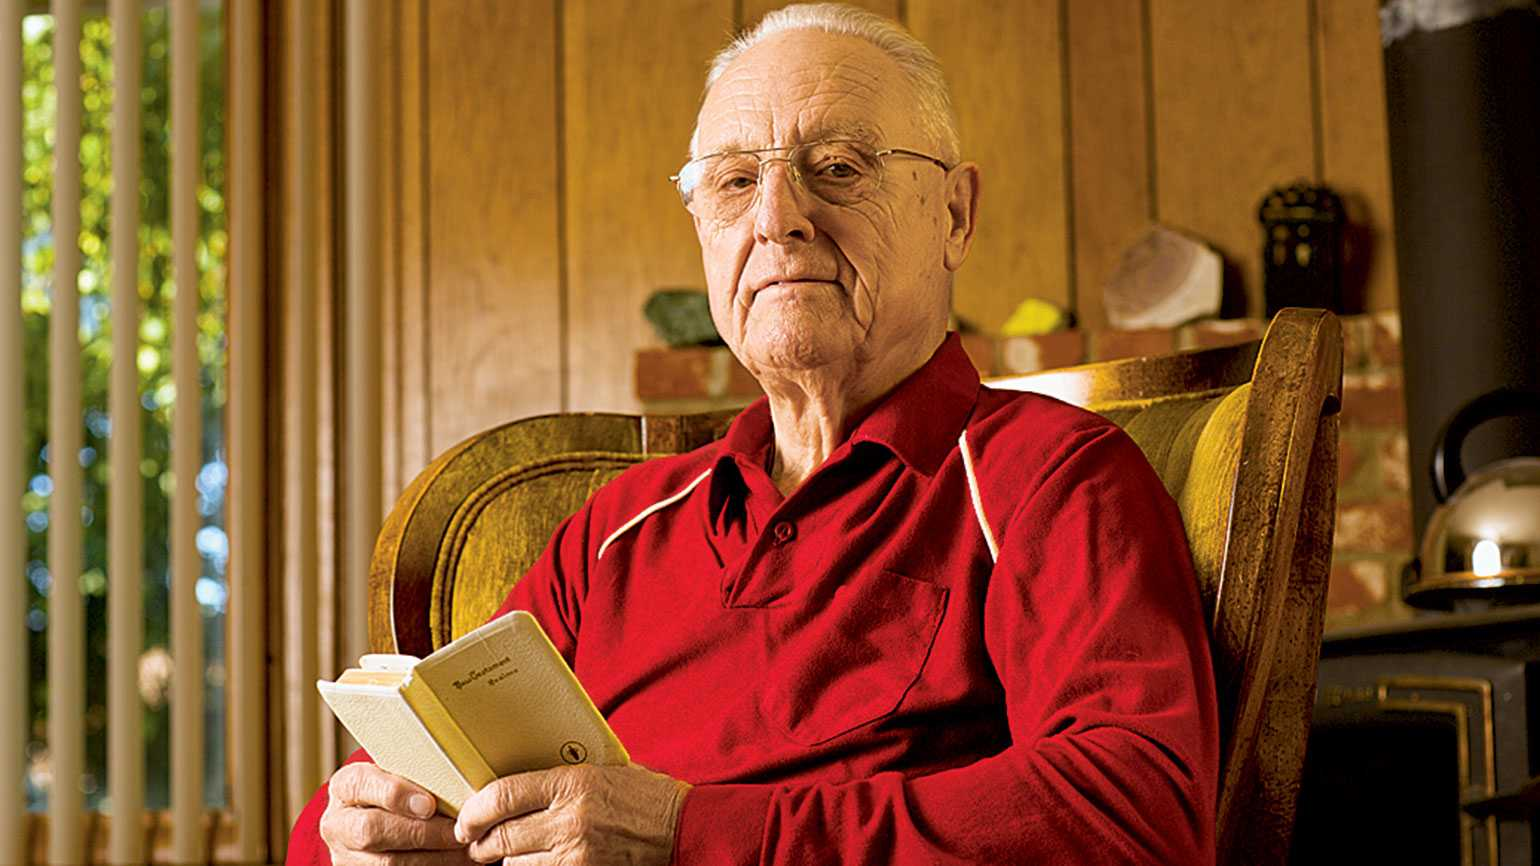 Al McDowell holds the small, white Bible he received in the military